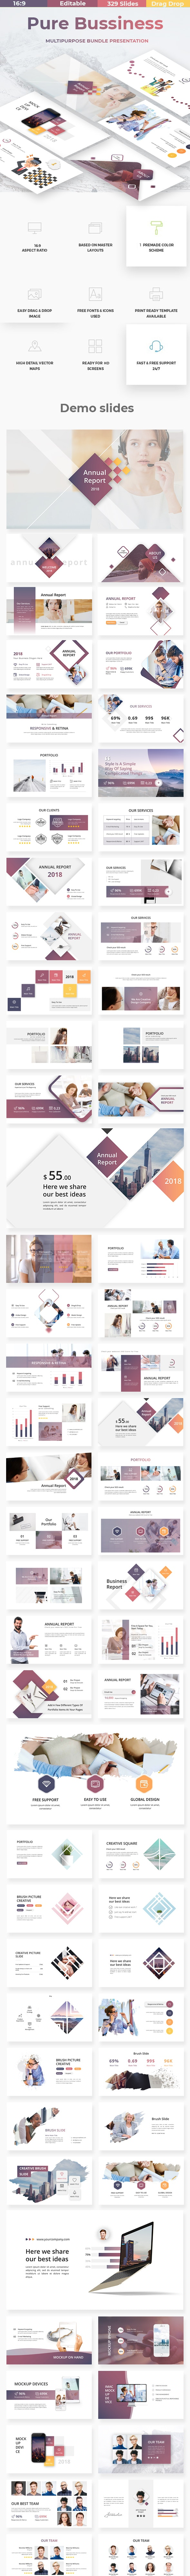 Pure Business Bundle 2 in 1 Powerpoint Template - Business PowerPoint Templates